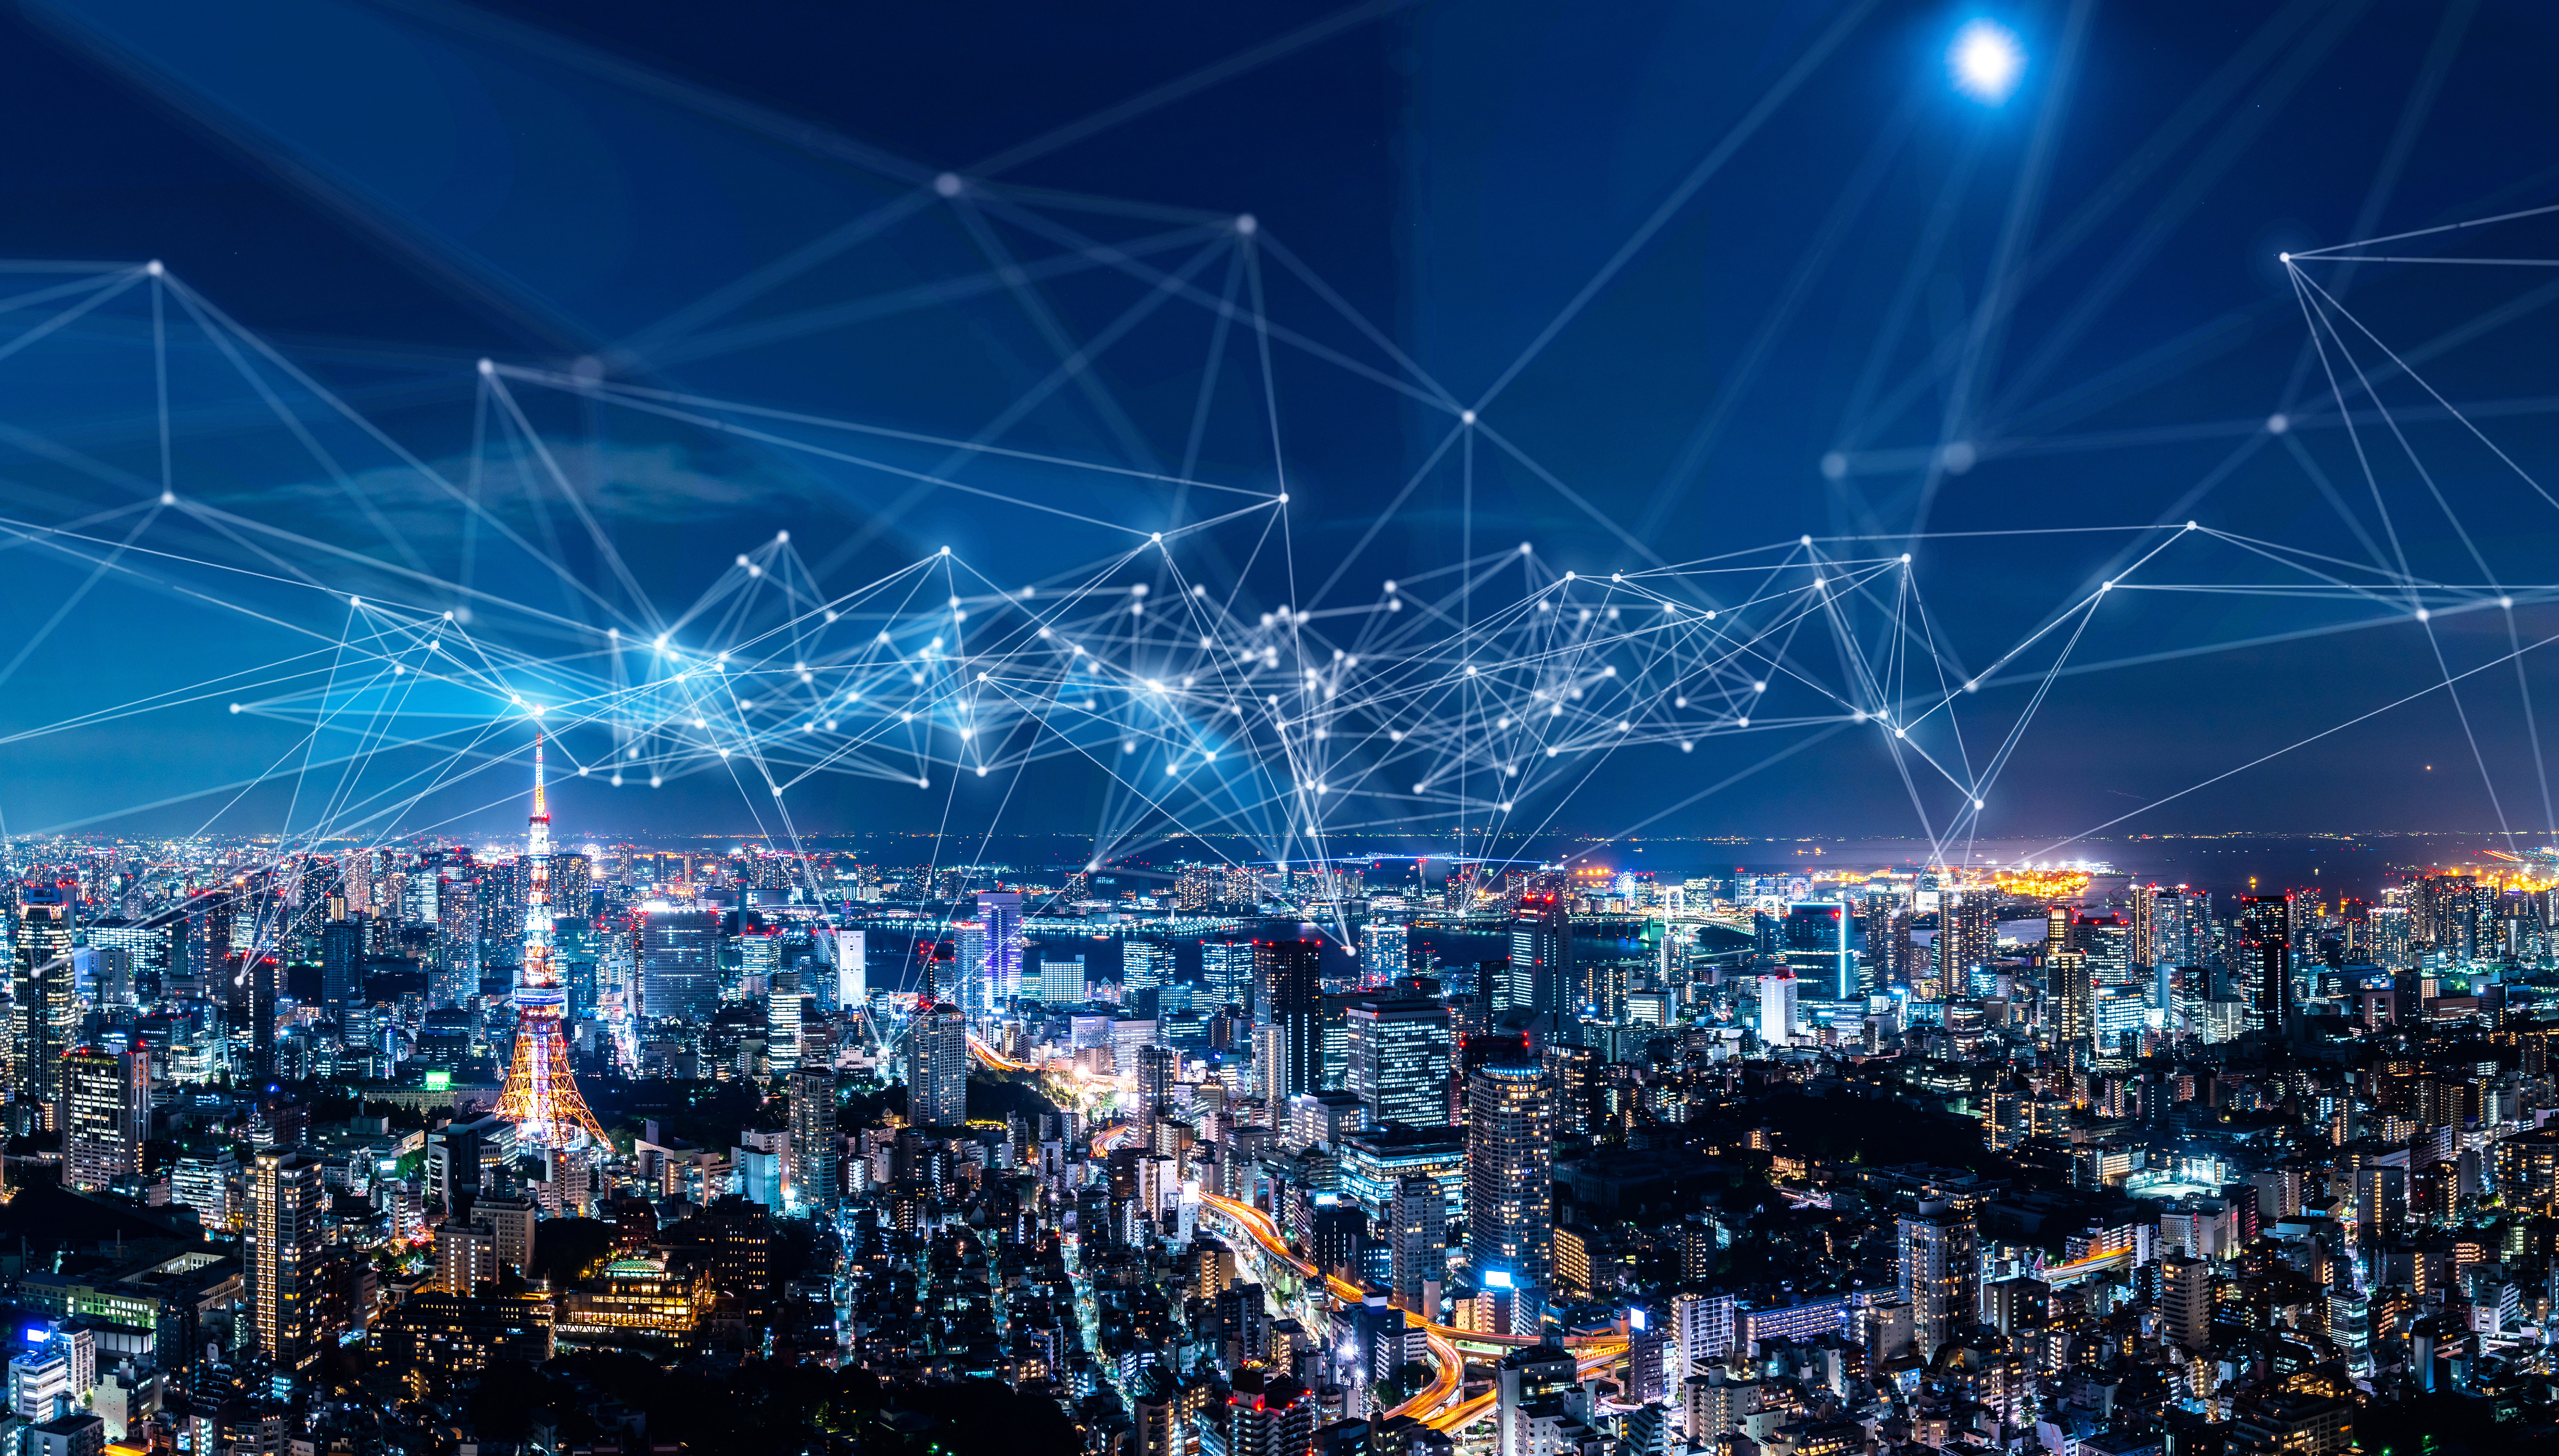 An imagined cityscape with visible network connections flying through the sky